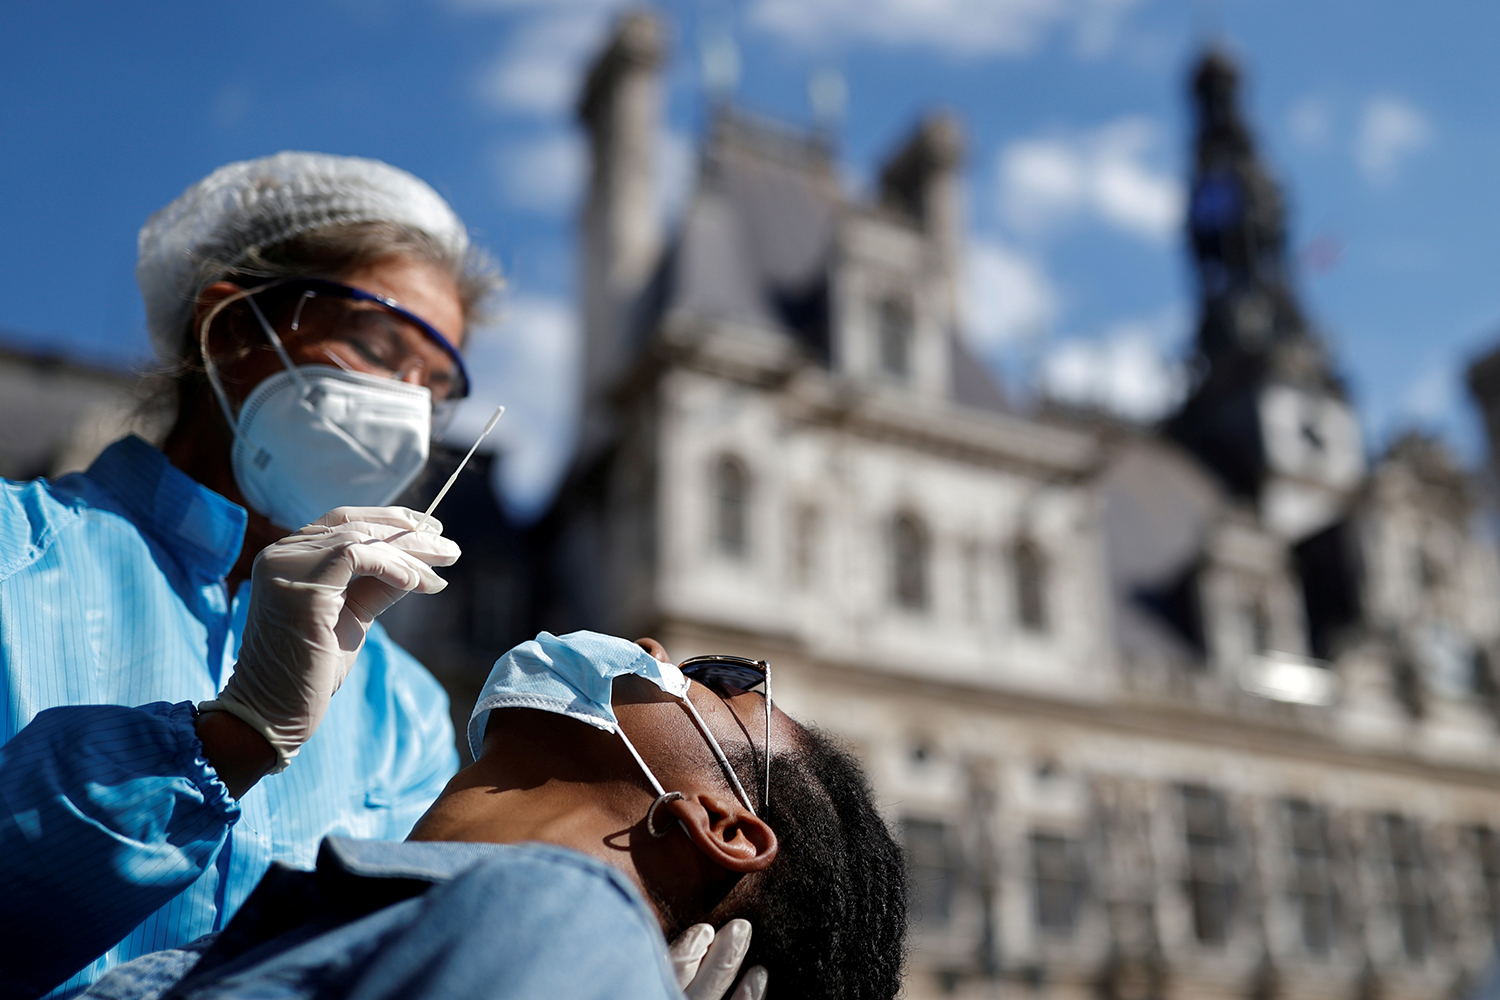 A health worker prepares to administer a nasal swab to a patient at a testing site for the coronavirus in front of the city hall in Paris on Sept. 2. Christian Hartmann/REUTERS